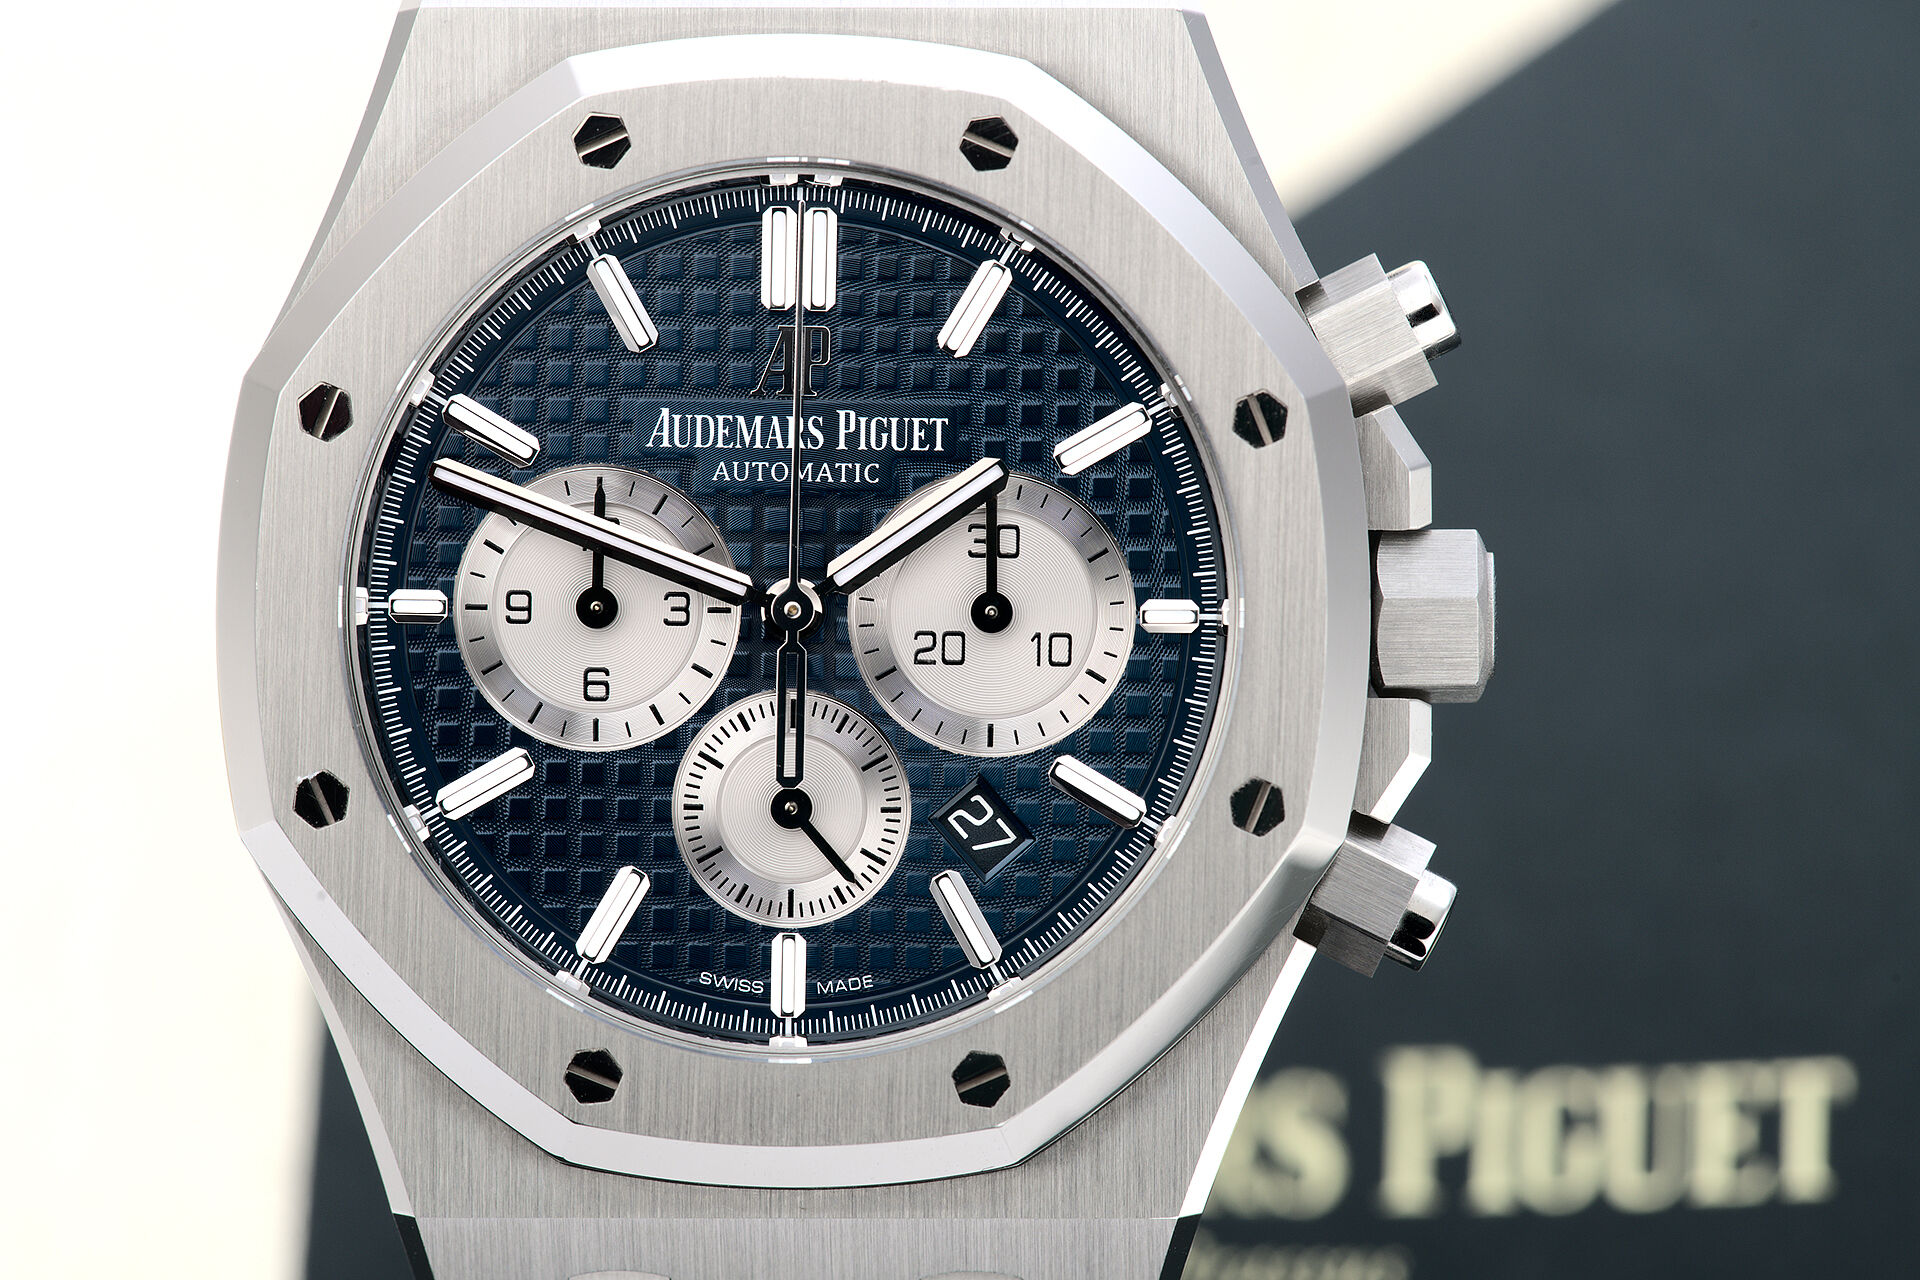 ref 26331ST.OO.1220ST.01 | Brand New 'Blue Dial' | Audemars Piguet Royal Oak Chronograph